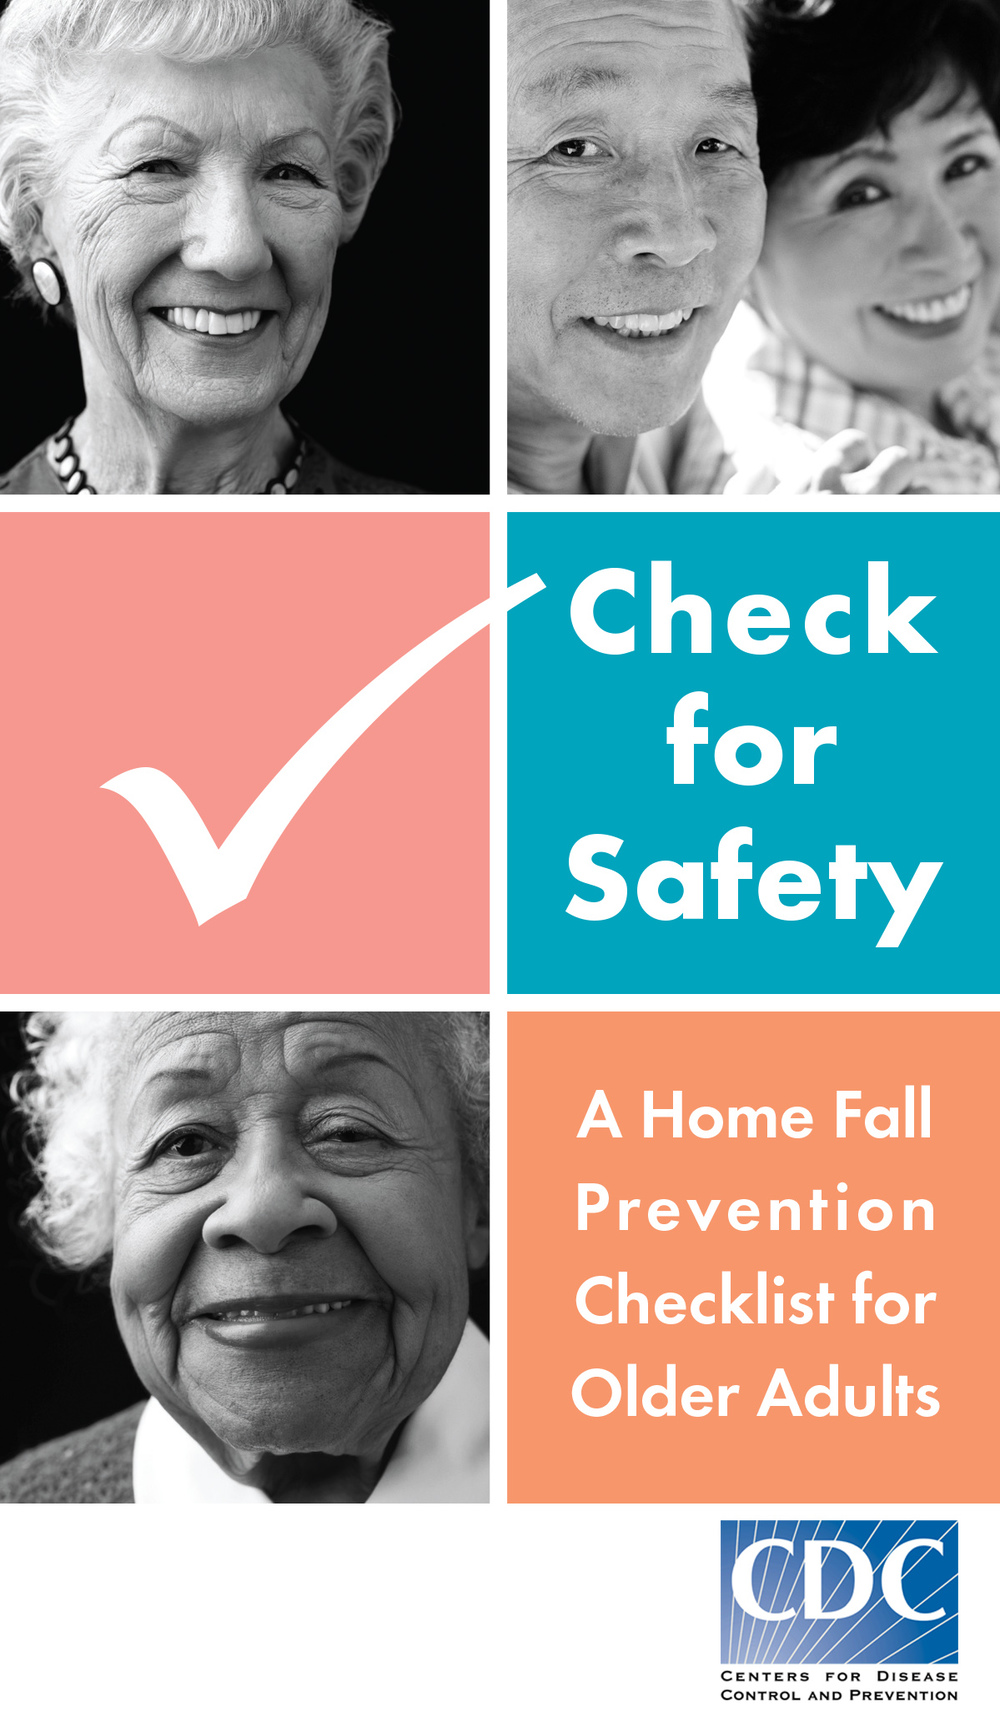 Fall Prevention Checklist provided by The Centers for Disease Control and Prevention